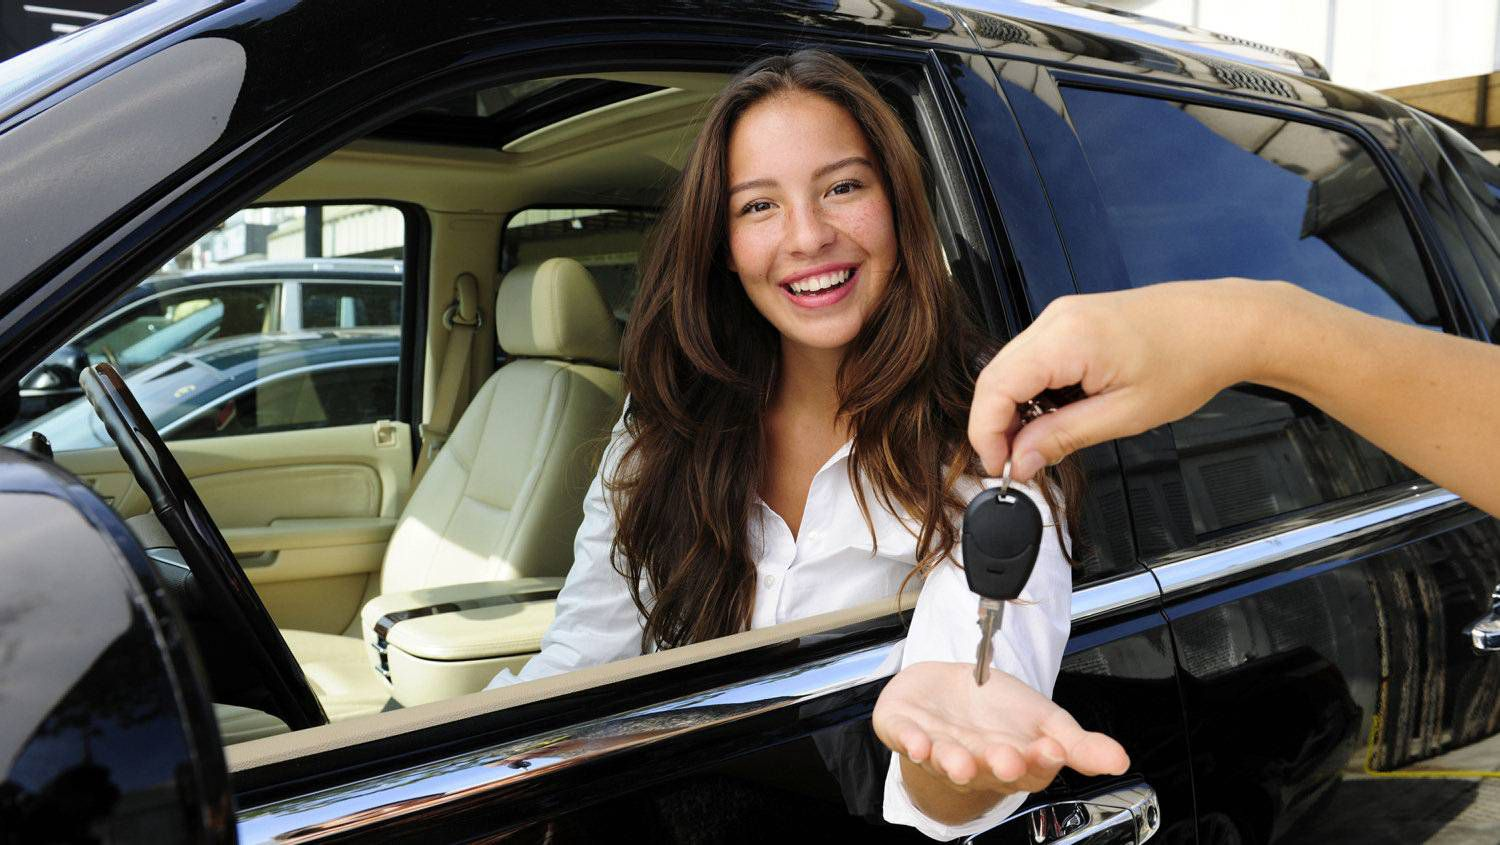 leasing a car is the worst financial option for most - the globe and